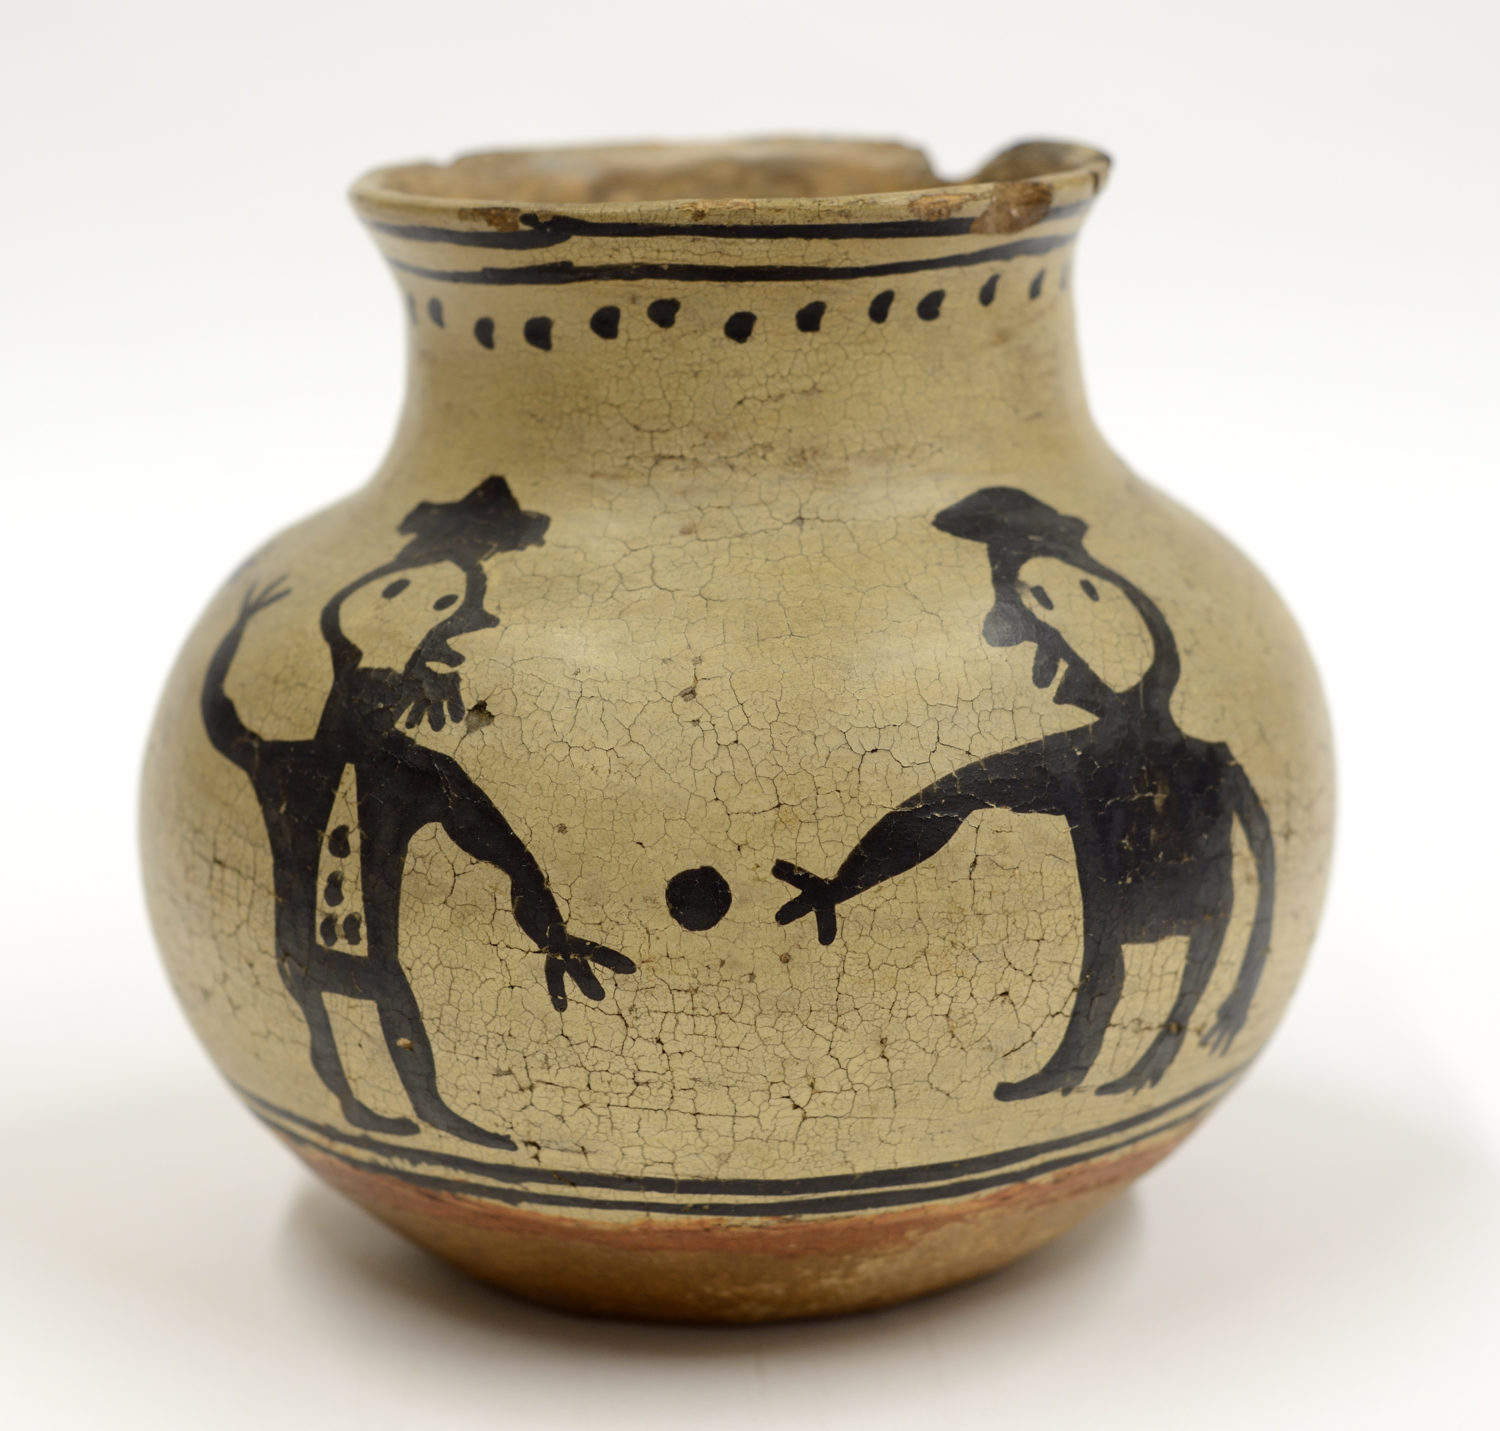 Tesuque Jar with Figures